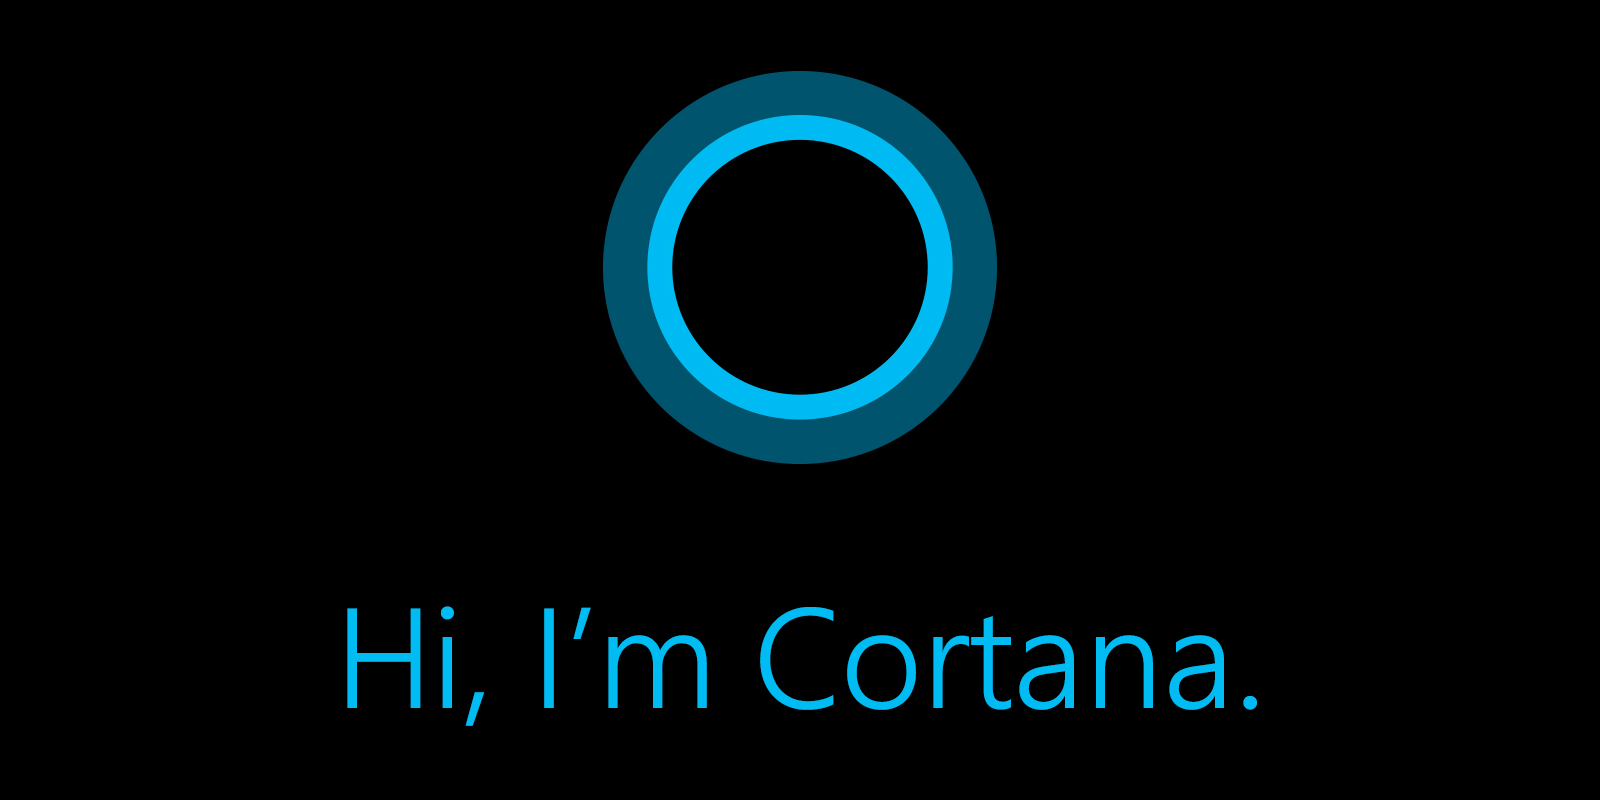 Cortana will be removed in Windows 11